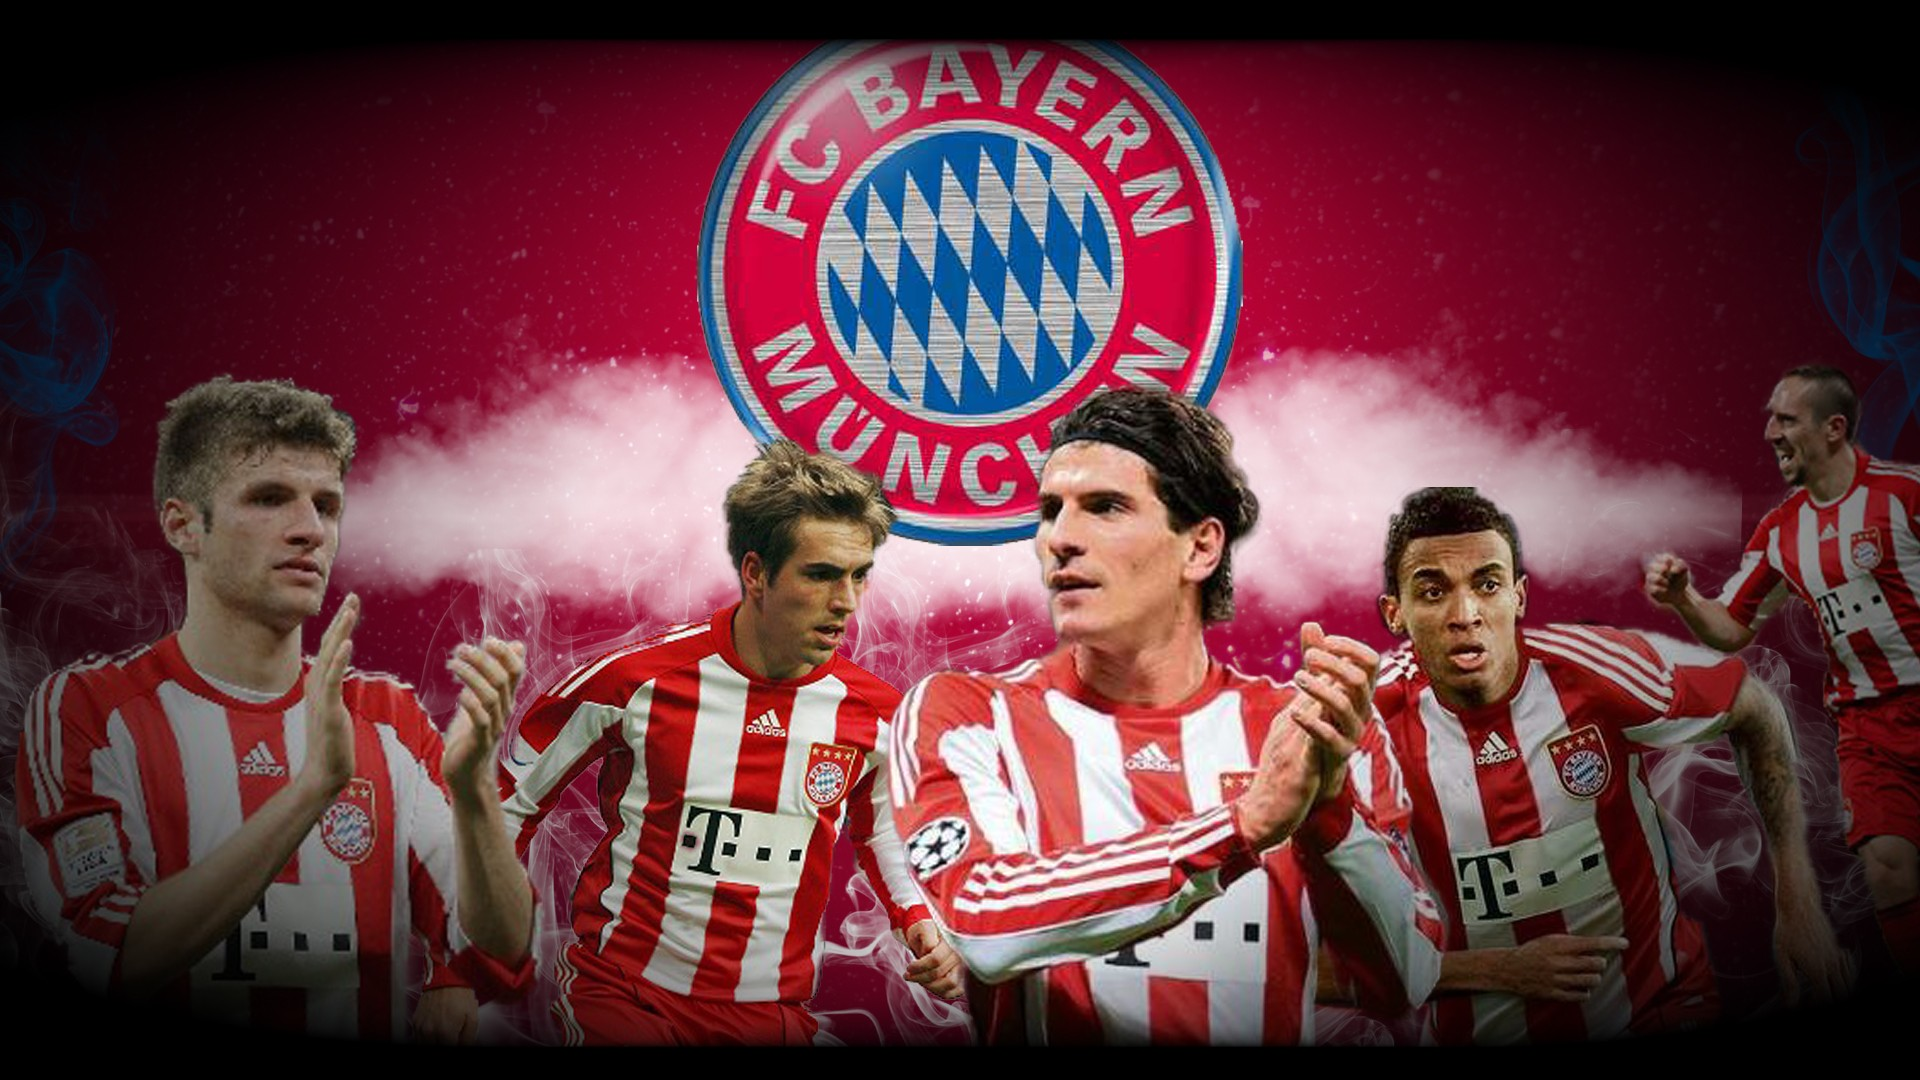 Bayern Munich Wallpaper High Resolutions